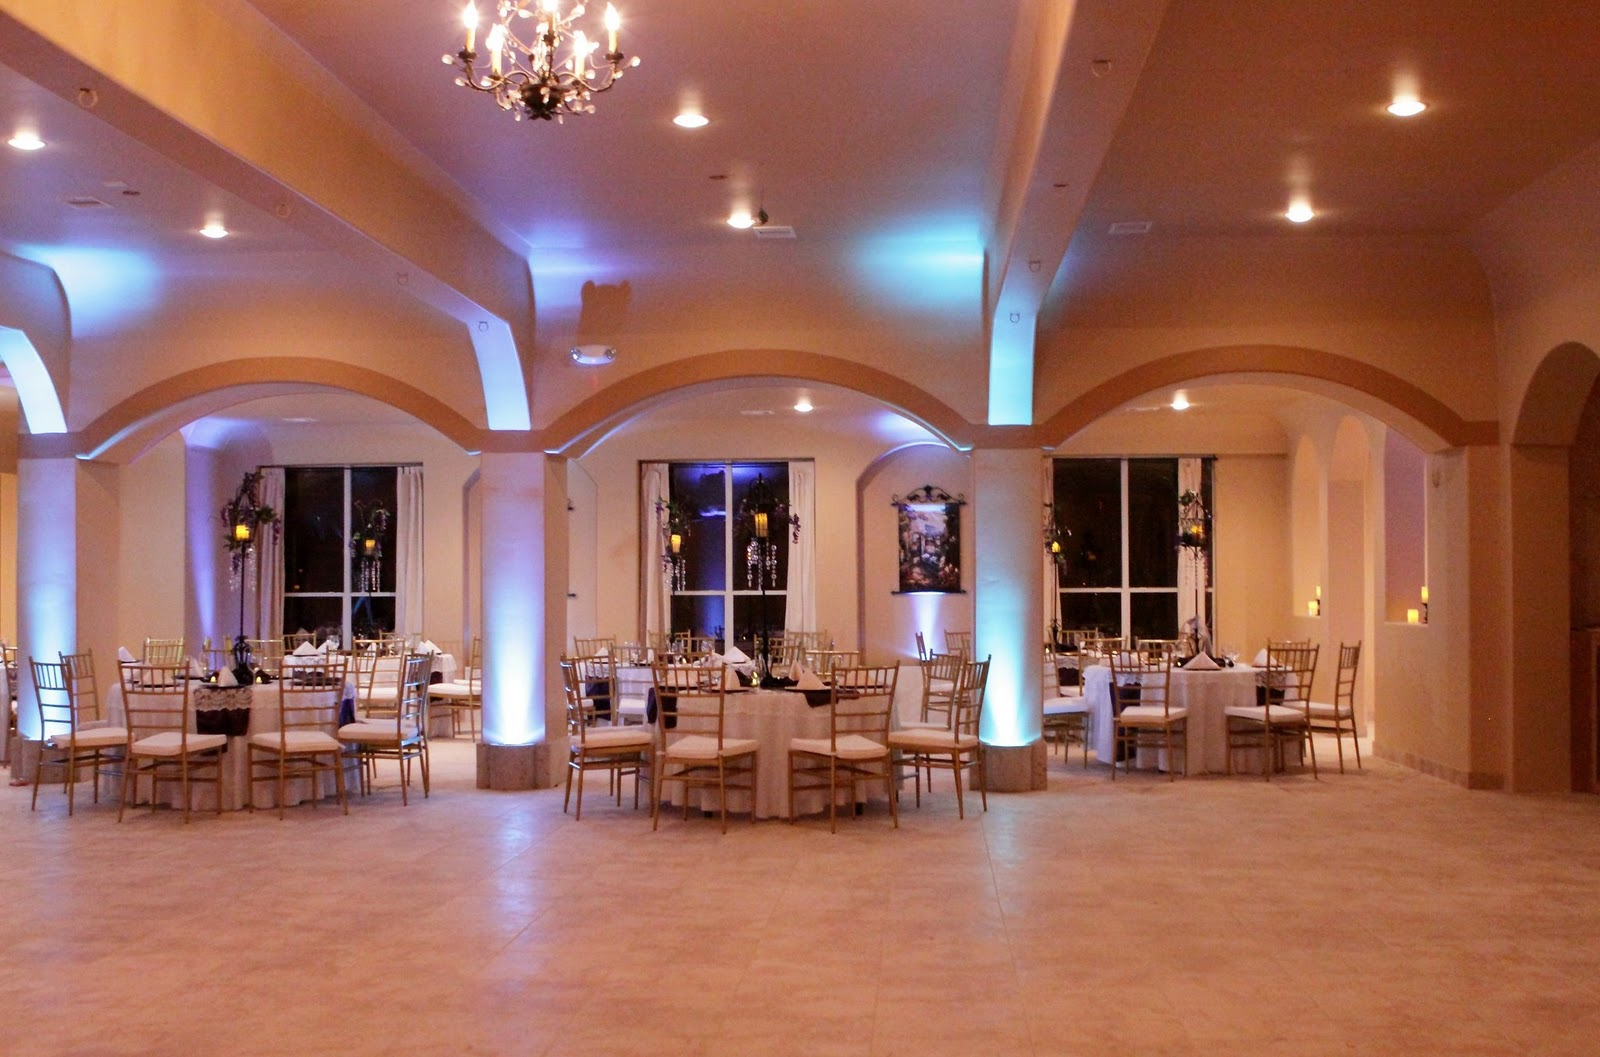 Salones De Bodas Reception Halls In Houston Tx Salones De Fiestas En Houston